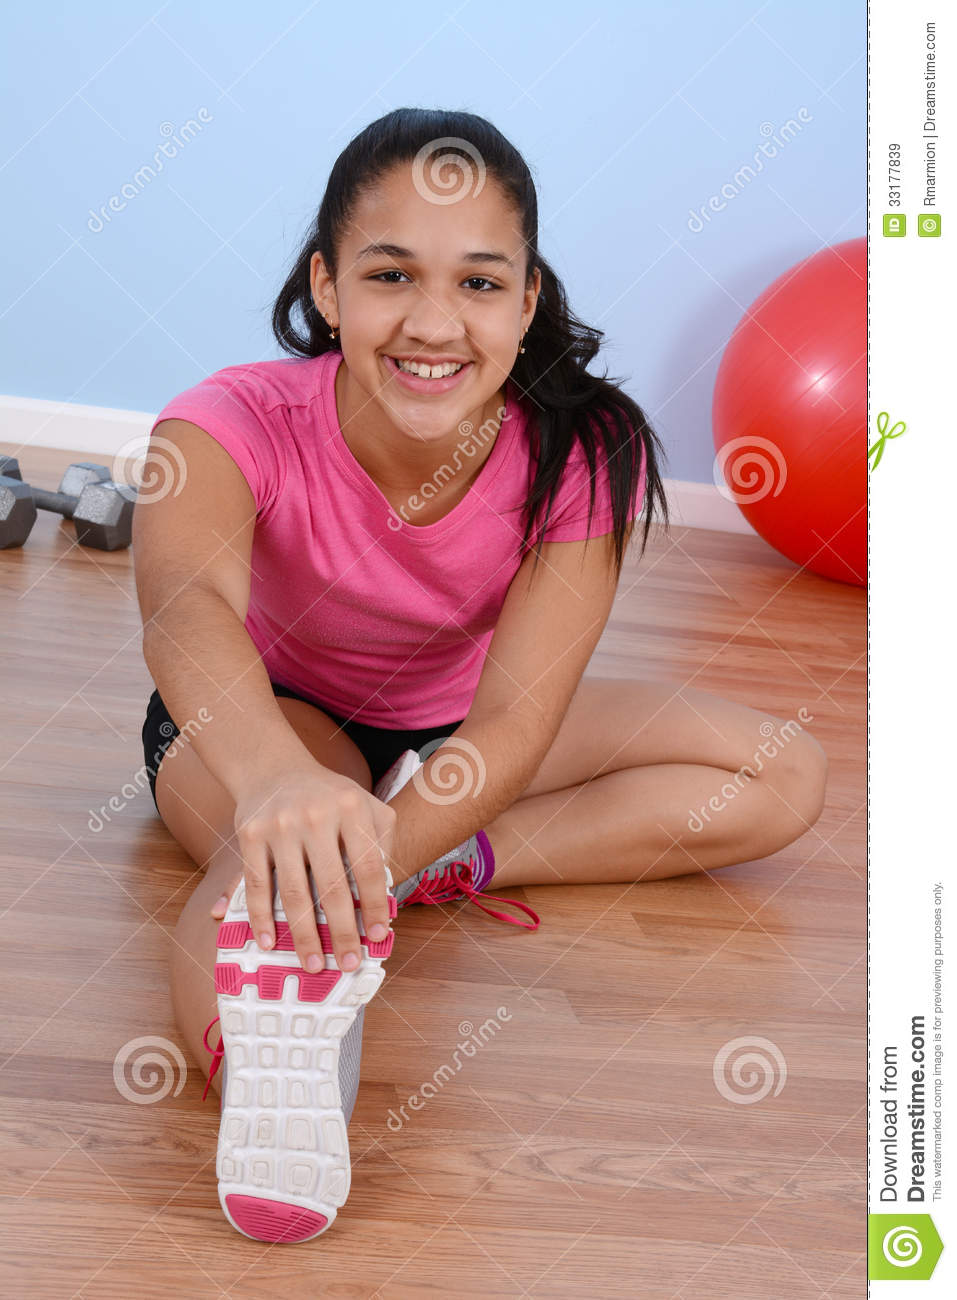 Teen Working Out 9